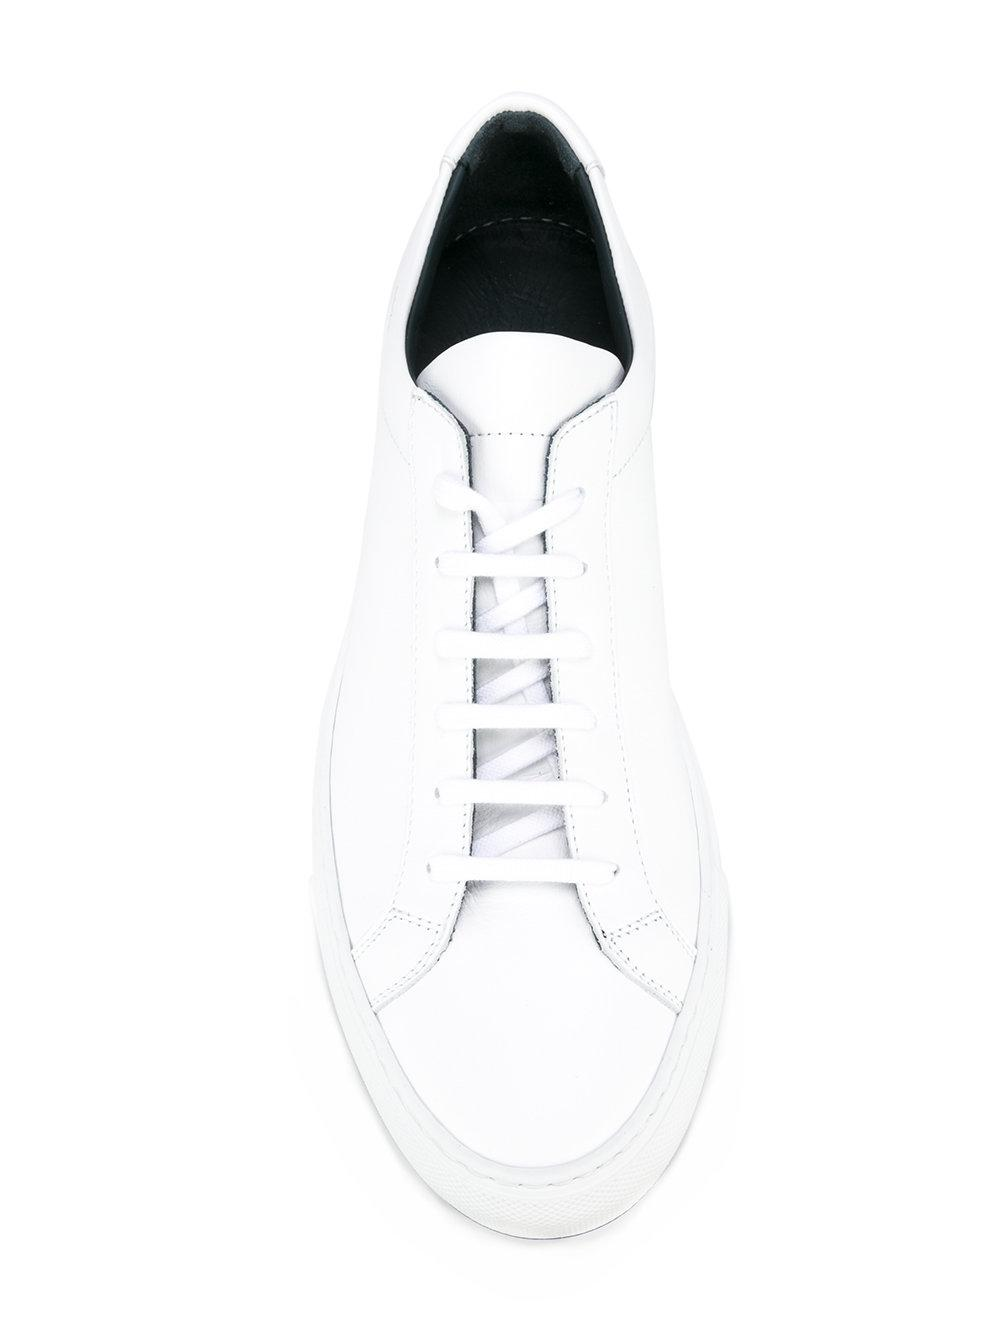 common projects achilles low Common projects achilles sale for women in the common projects sale online store that you can buy the common projects achilles low sale and common projects sneakers.